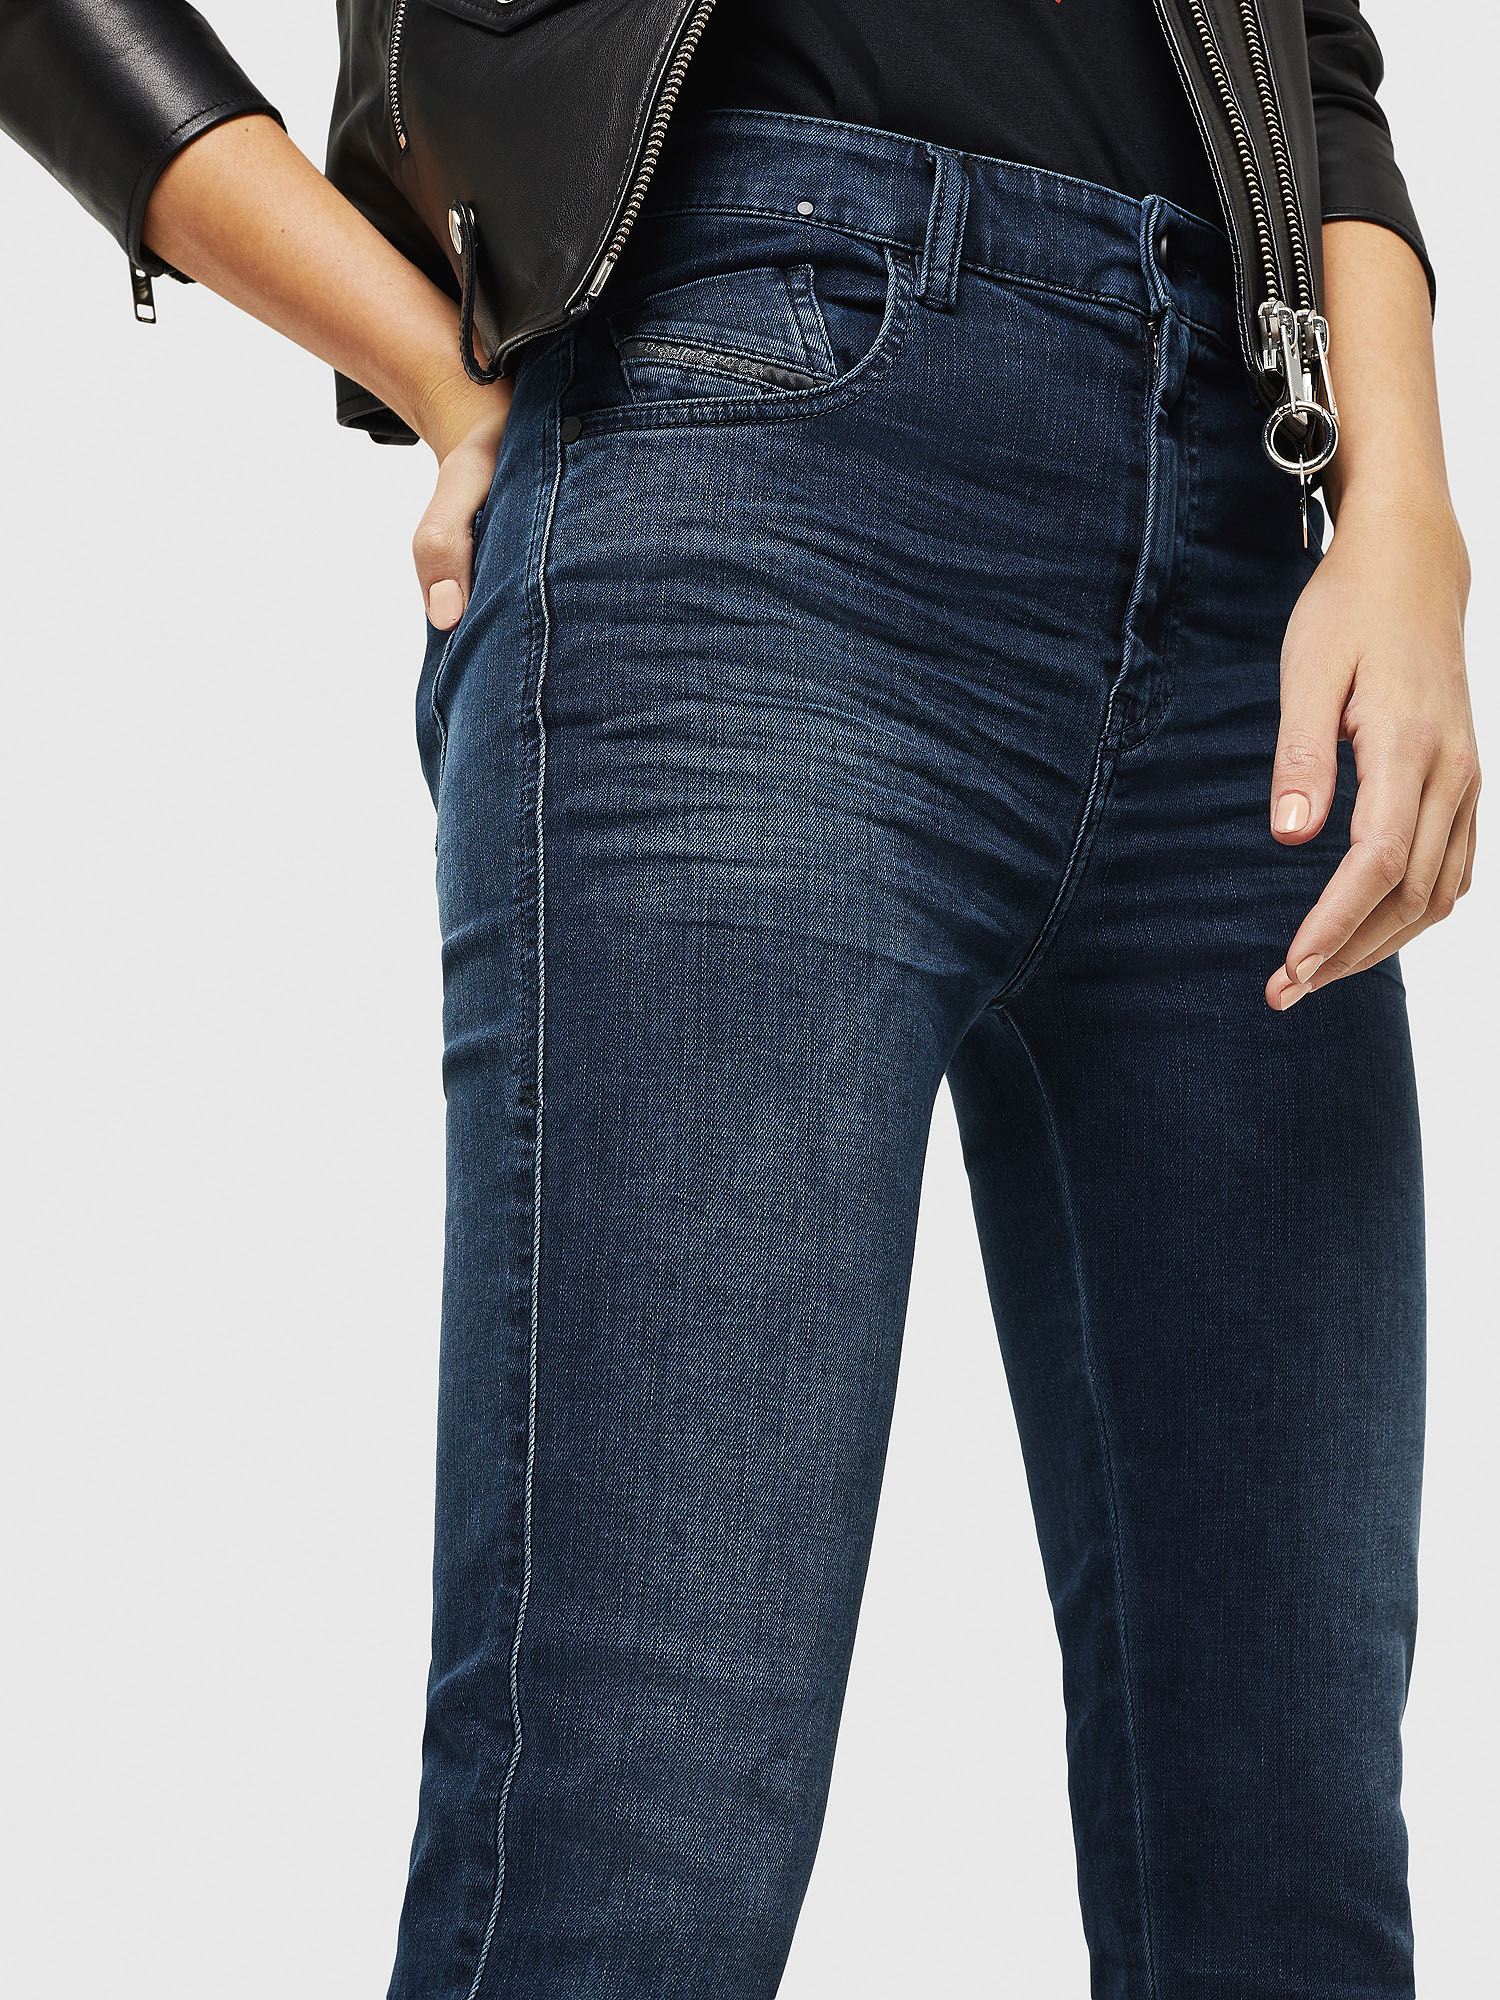 Diesel - Slandy High 084UT,  - Jeans - Image 3